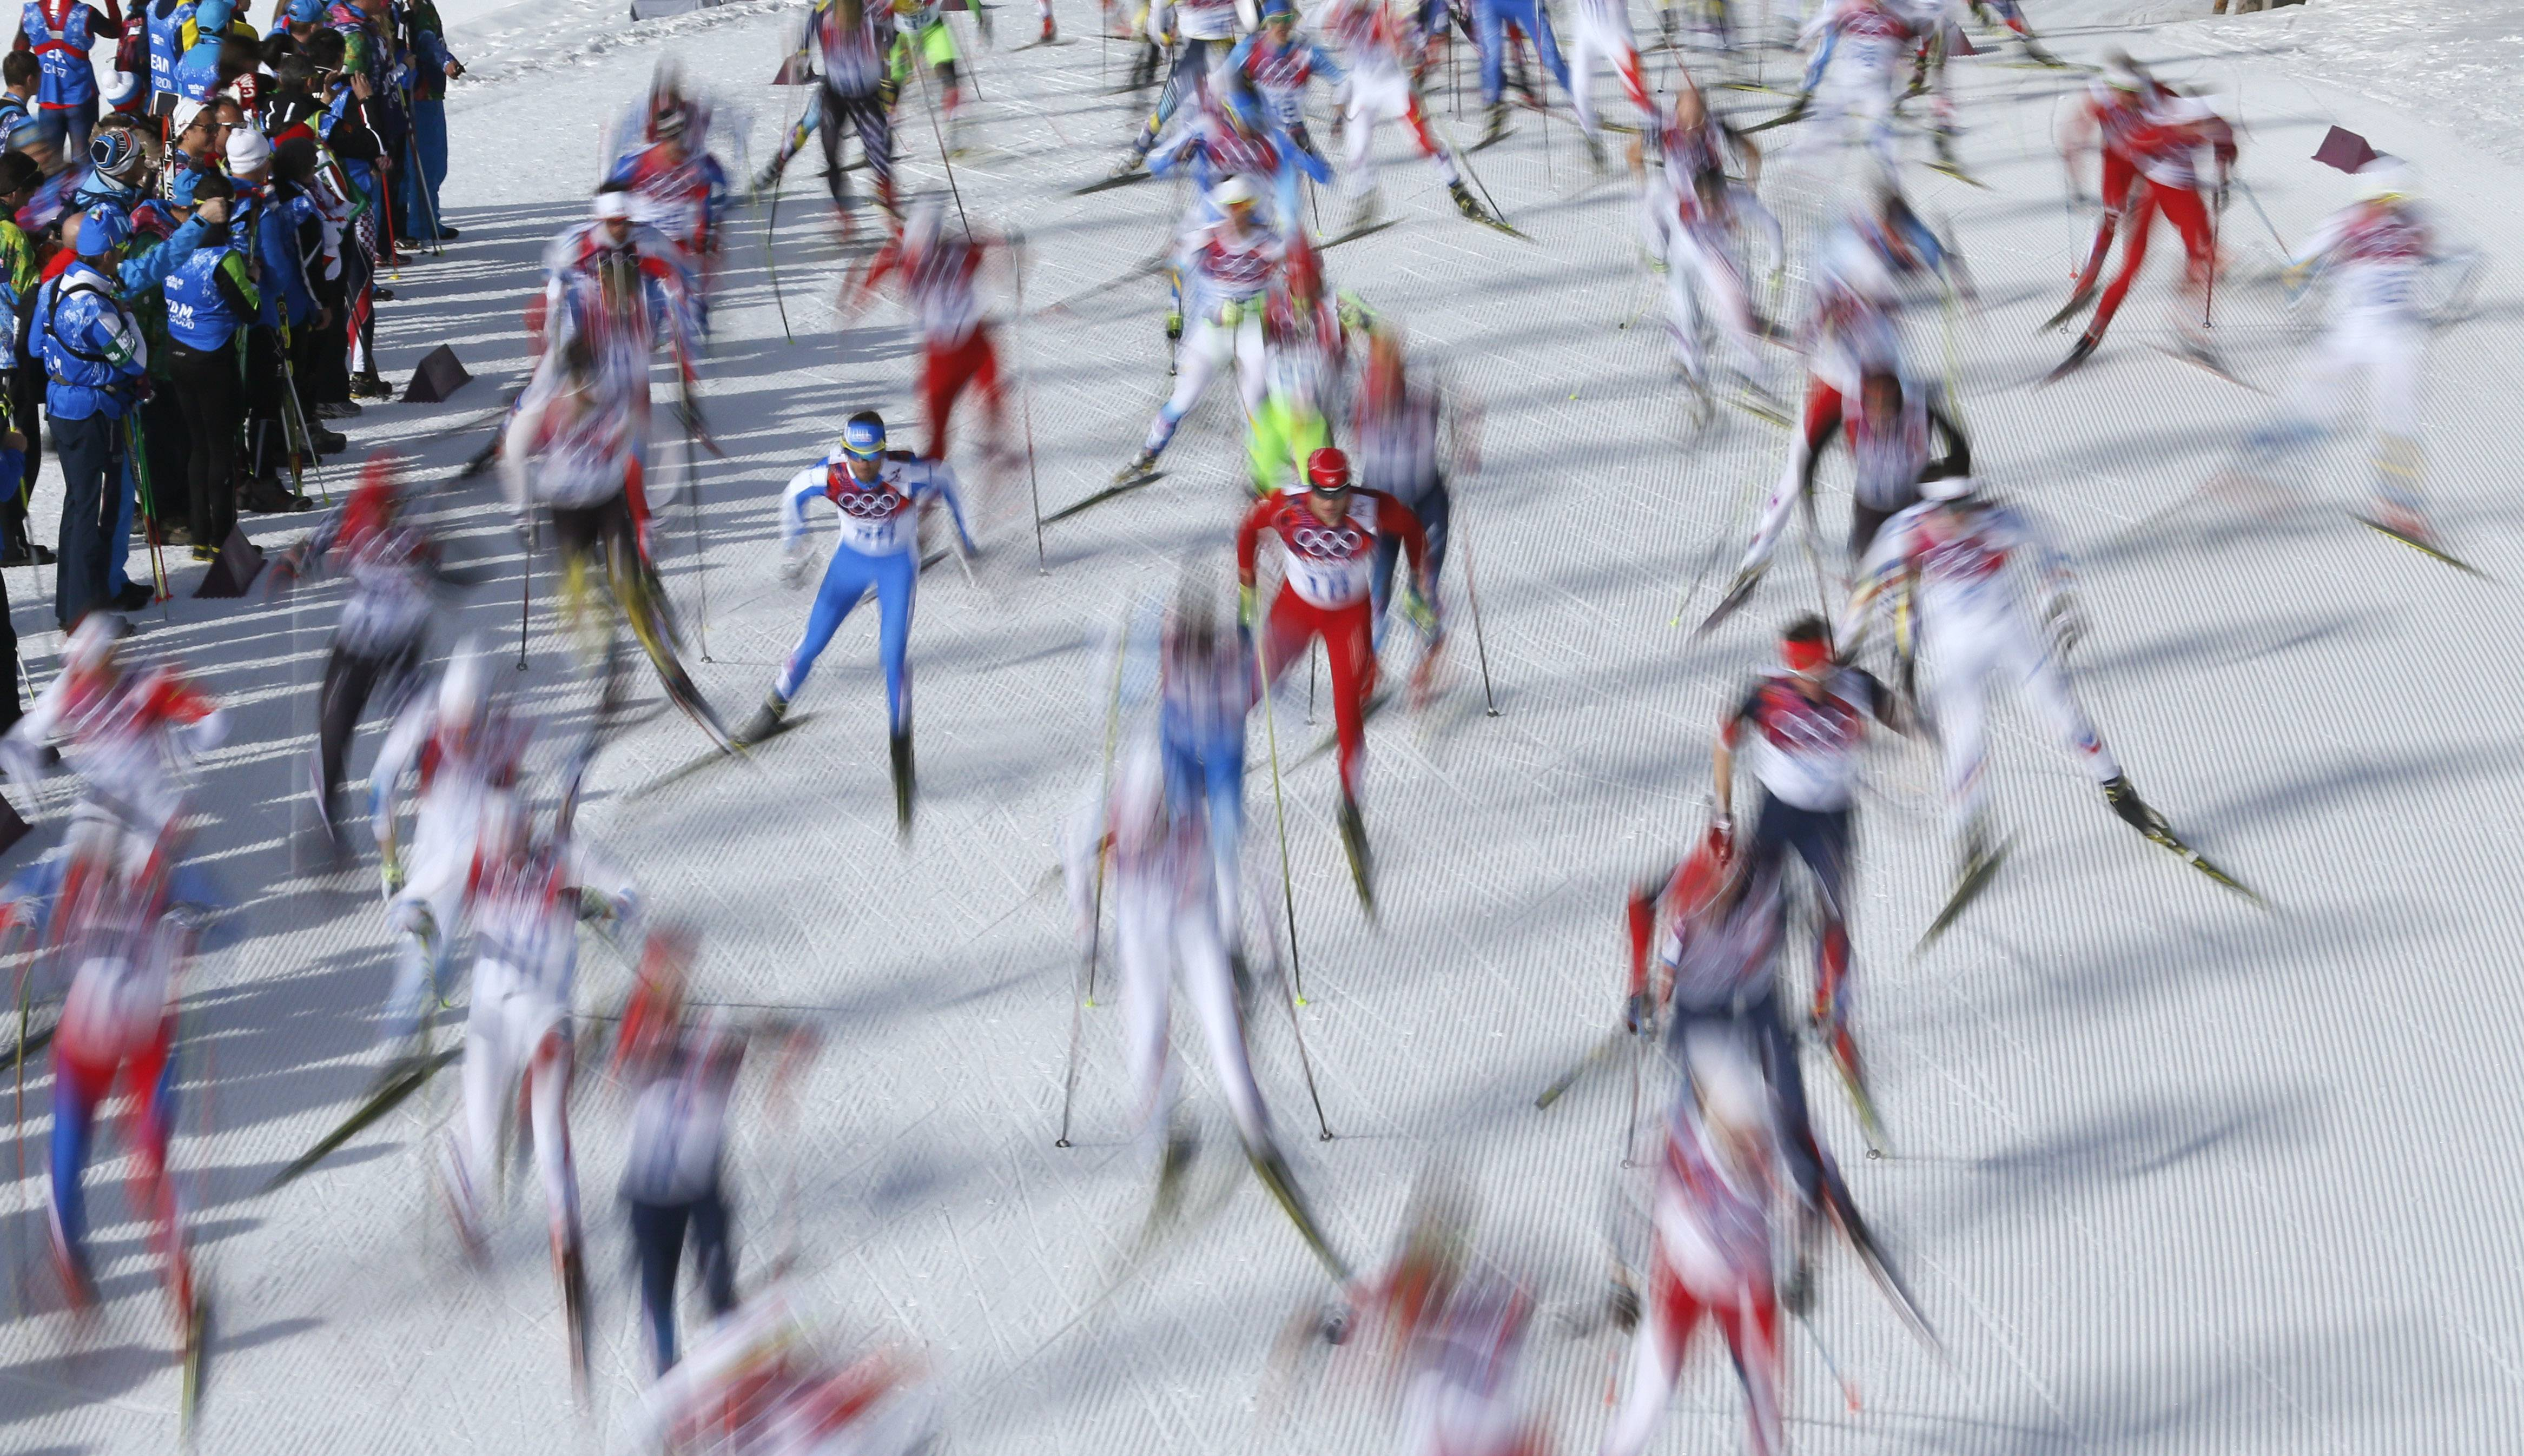 In this photo taken with slow shutter speed Switzerland's Dario Cologna, center, skis during the men's 50K cross-country race at the 2014 Winter Olympics, Sunday, Feb. 23, 2014, in Krasnaya Polyana, Russia.